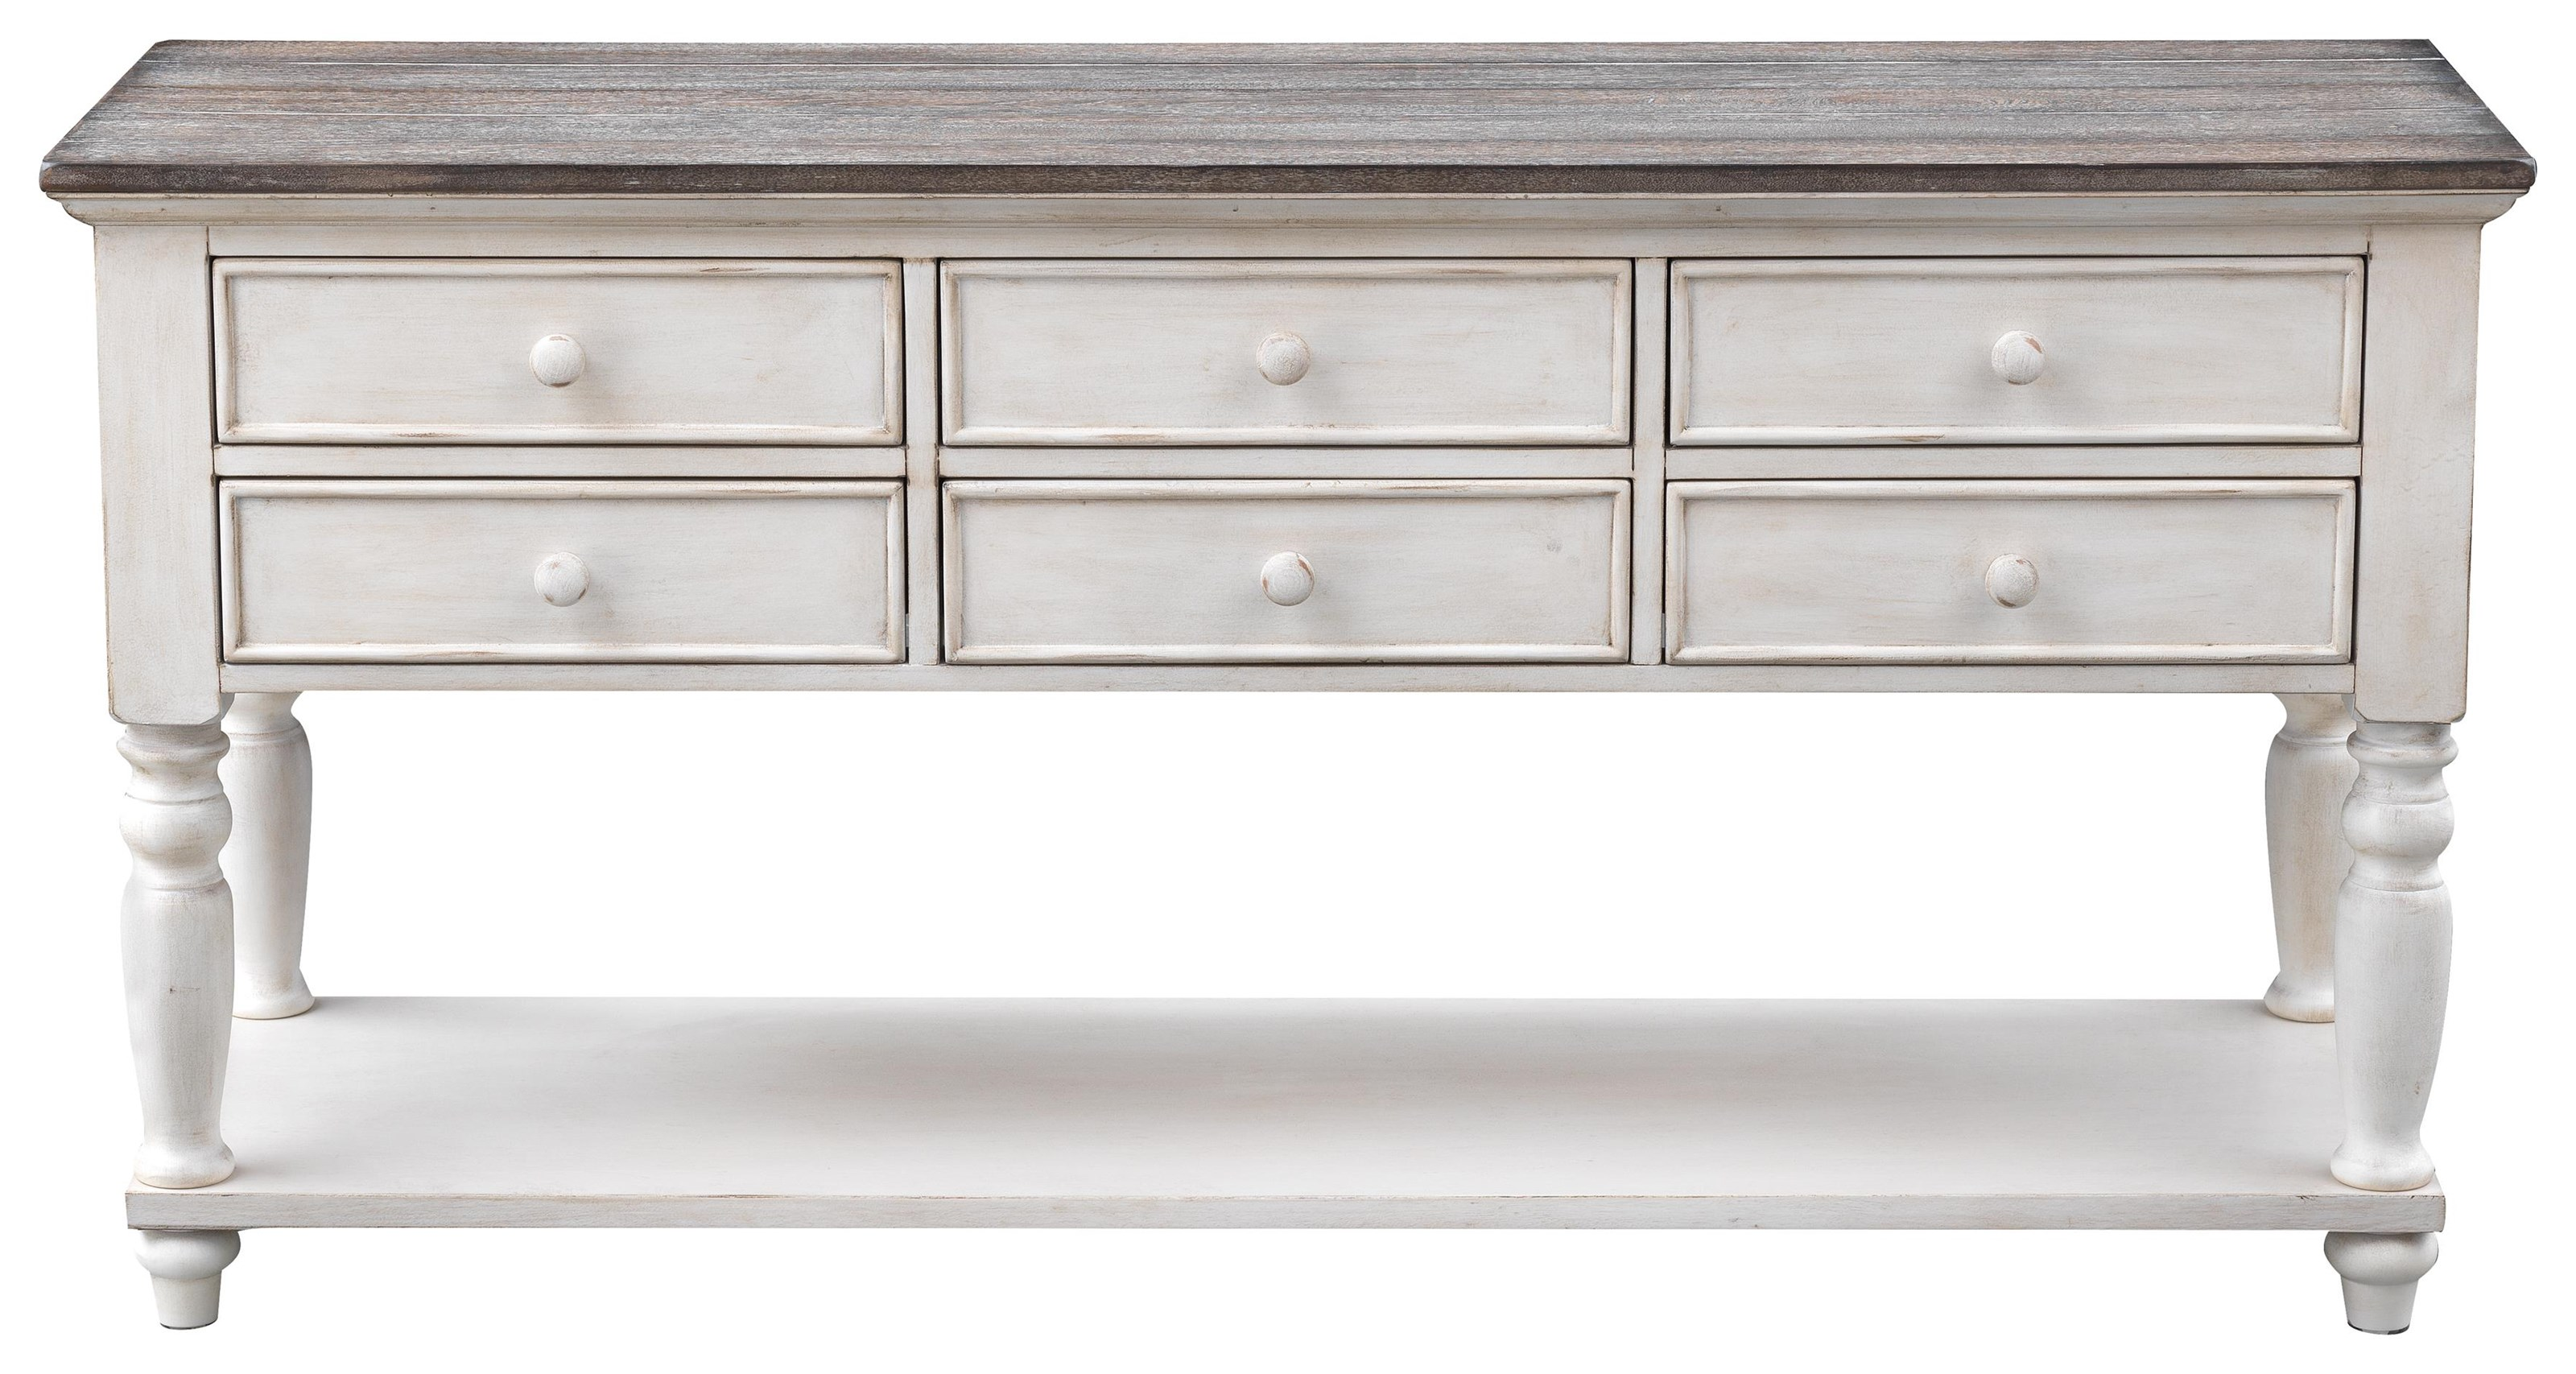 Bar Harbor II Console Table by Coast to Coast Imports at HomeWorld Furniture